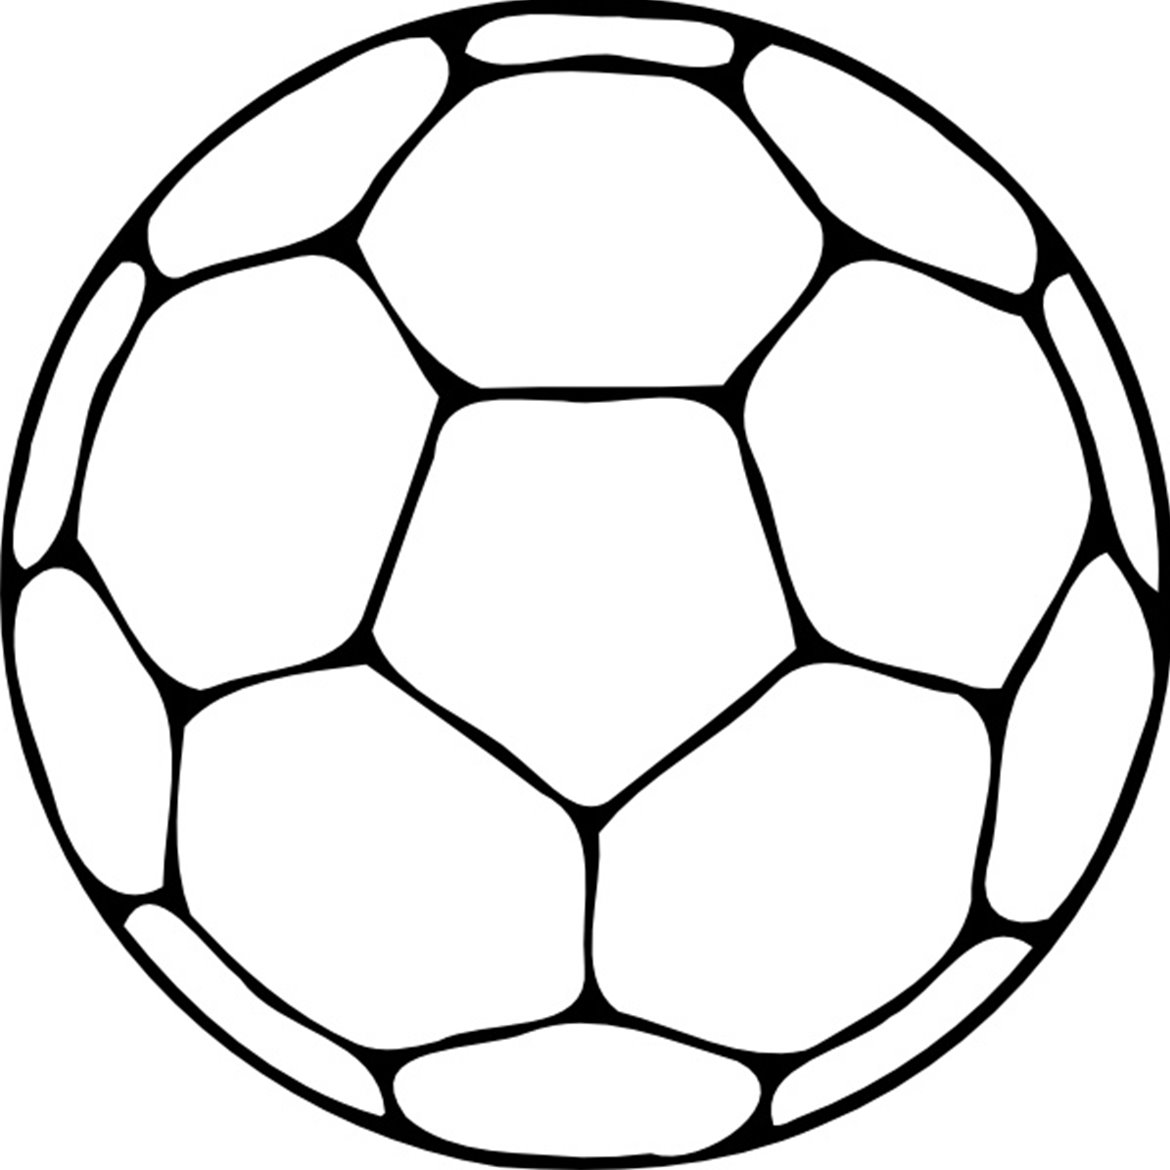 handball_ball_clip_art_15715